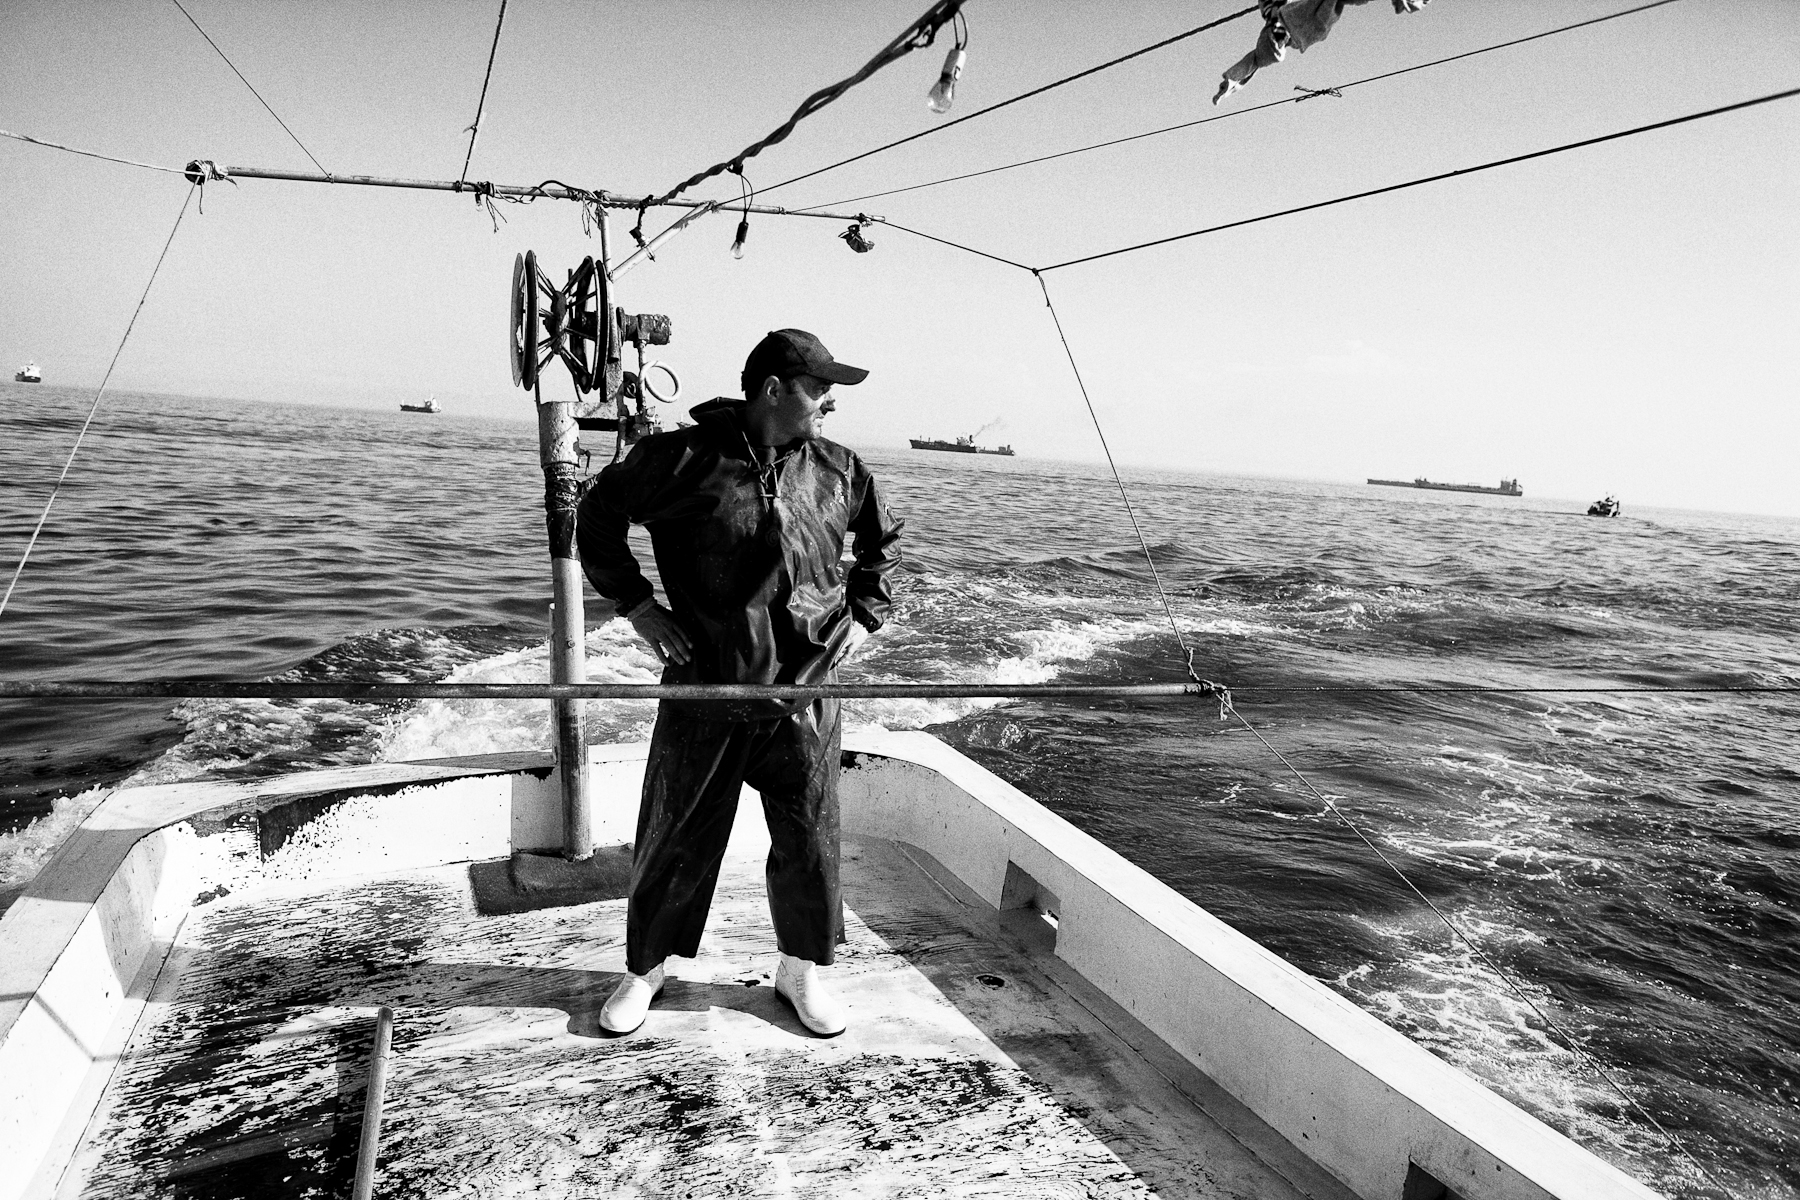 Cinar observes the sea as they circle the schools of fish in the Marmara Sea on June 21, 2010.